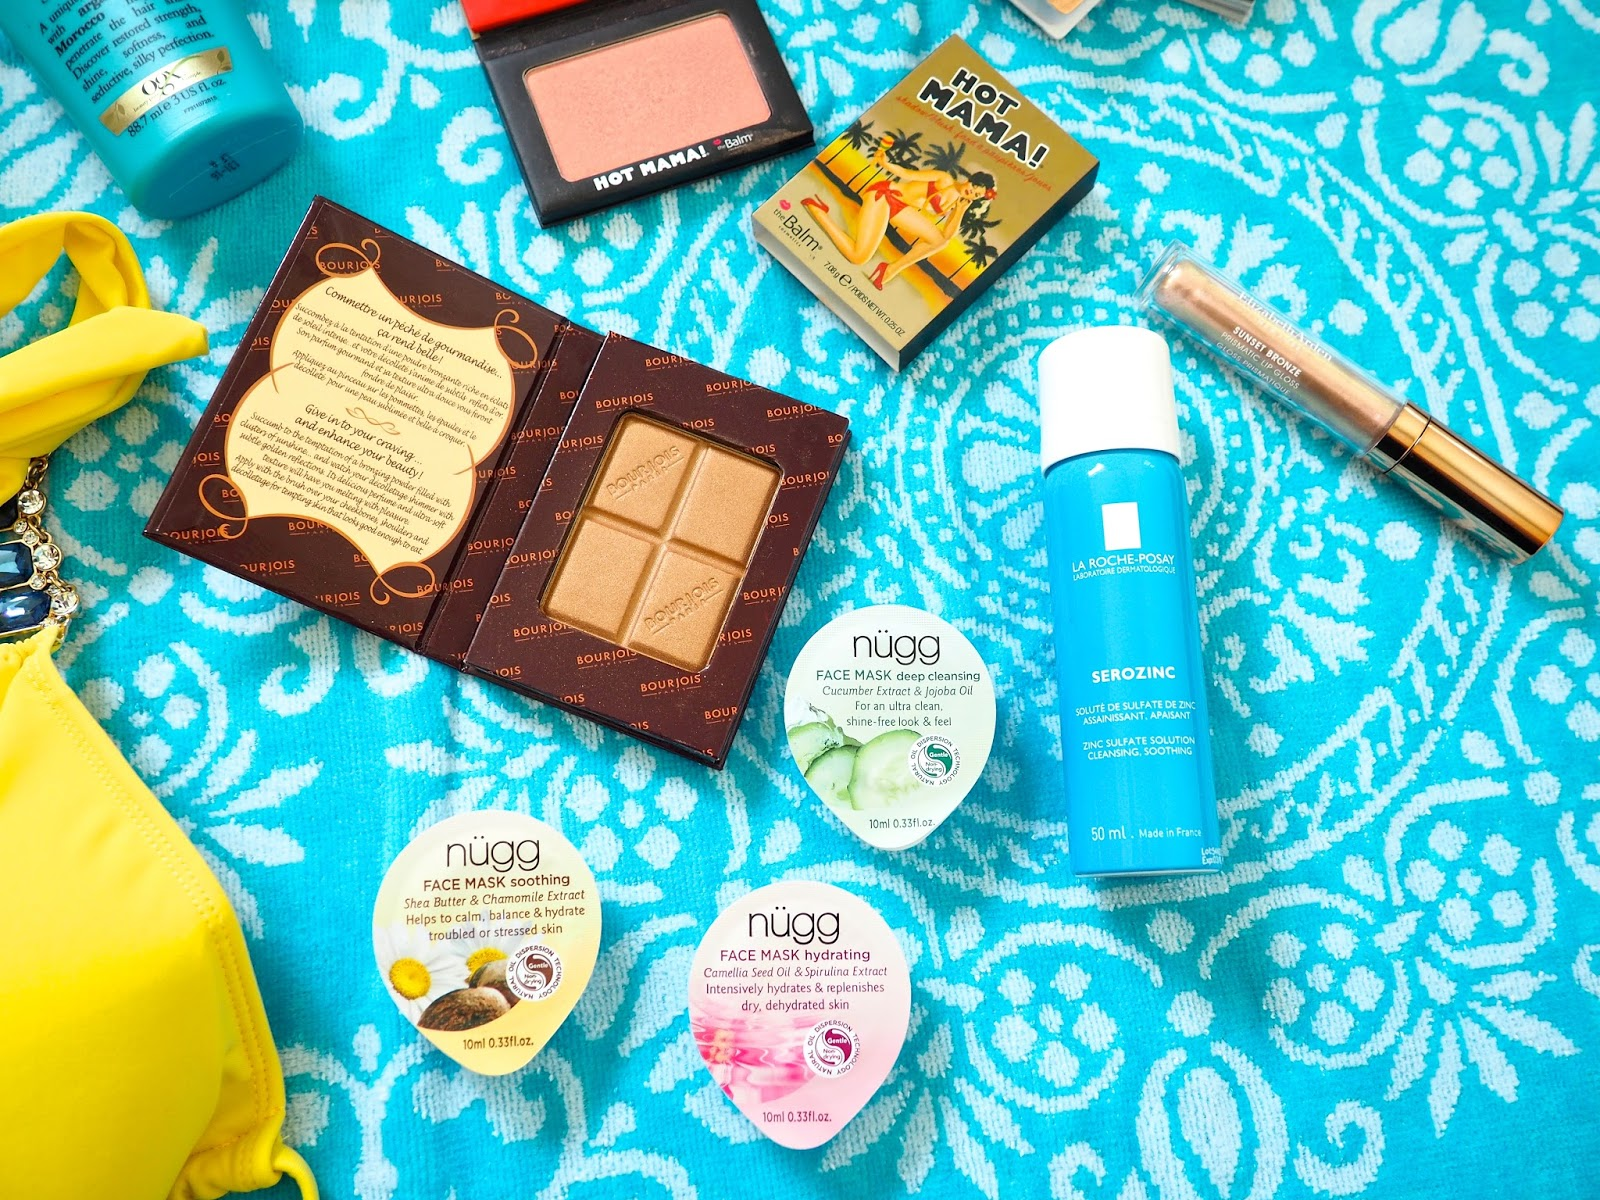 It's Cultured Holiday Essentials Skincare and Makeup Cosmetics